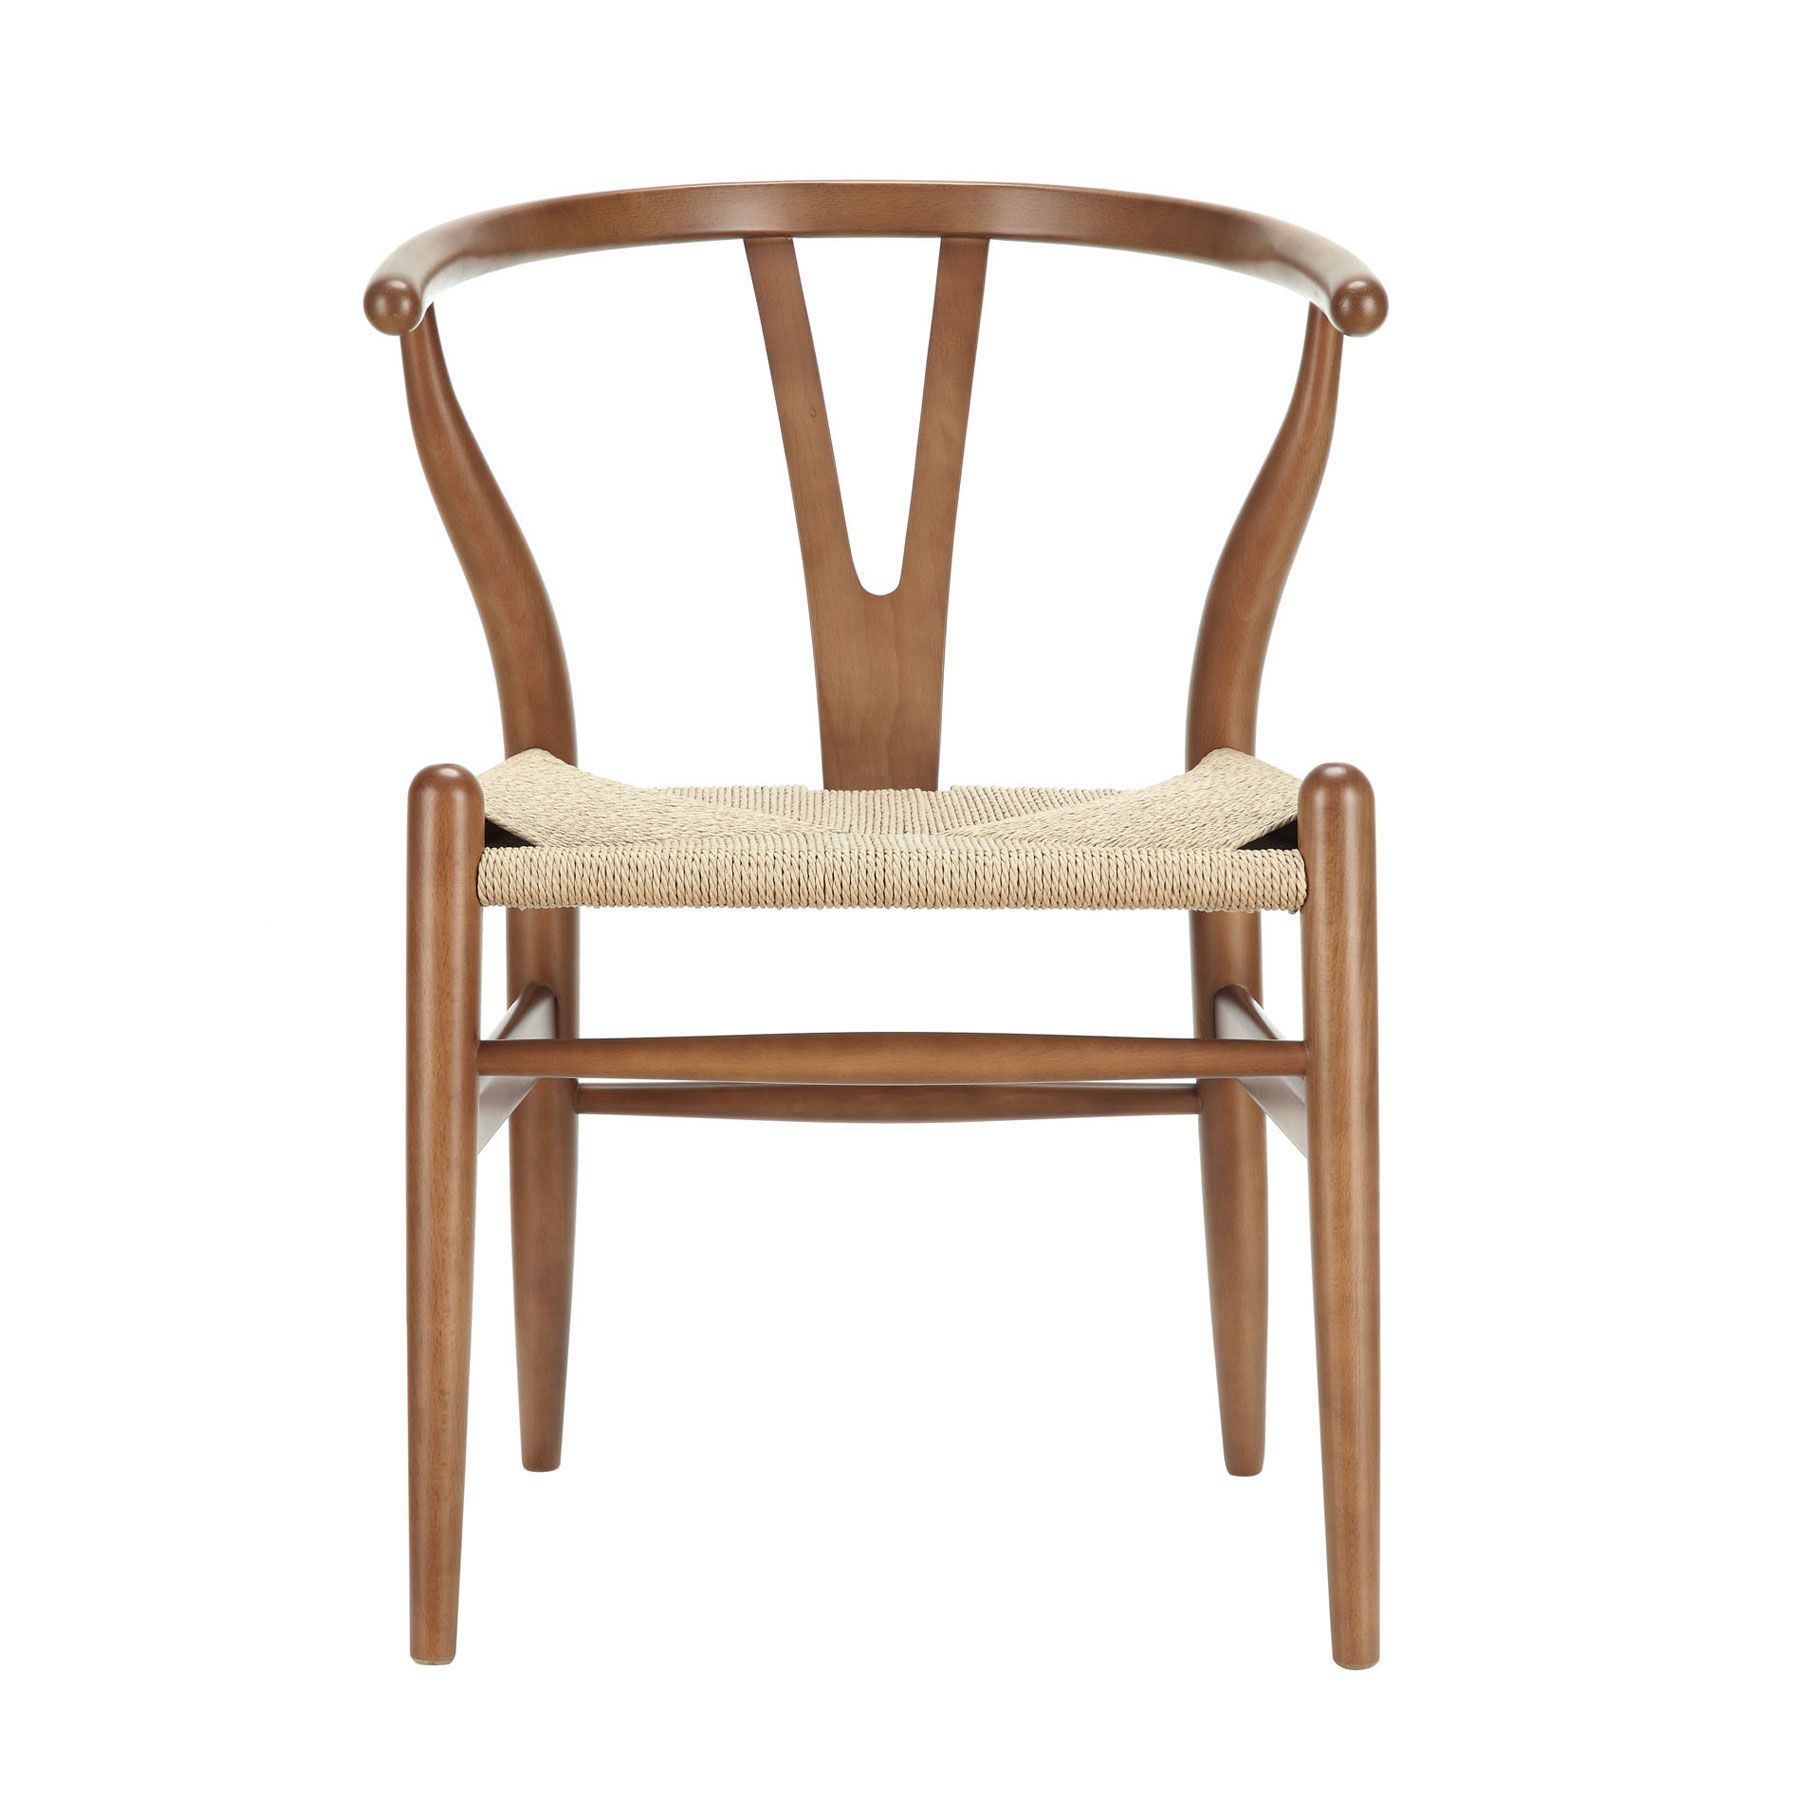 Marrying spartan-lined wood with modern design, this Woven Shaker Chair makes a great match with a rustic harvest table or modern dining table. The tightly woven seat and simple, sturdy foundation make... Find the Woven Shaker Chair, as seen in the Modern Rustic Retreat Collection at http://dotandbo.com/collections/modern-rustic-retreat?utm_source=pinterest&utm_medium=organic&db_sku=EEI0061-wal